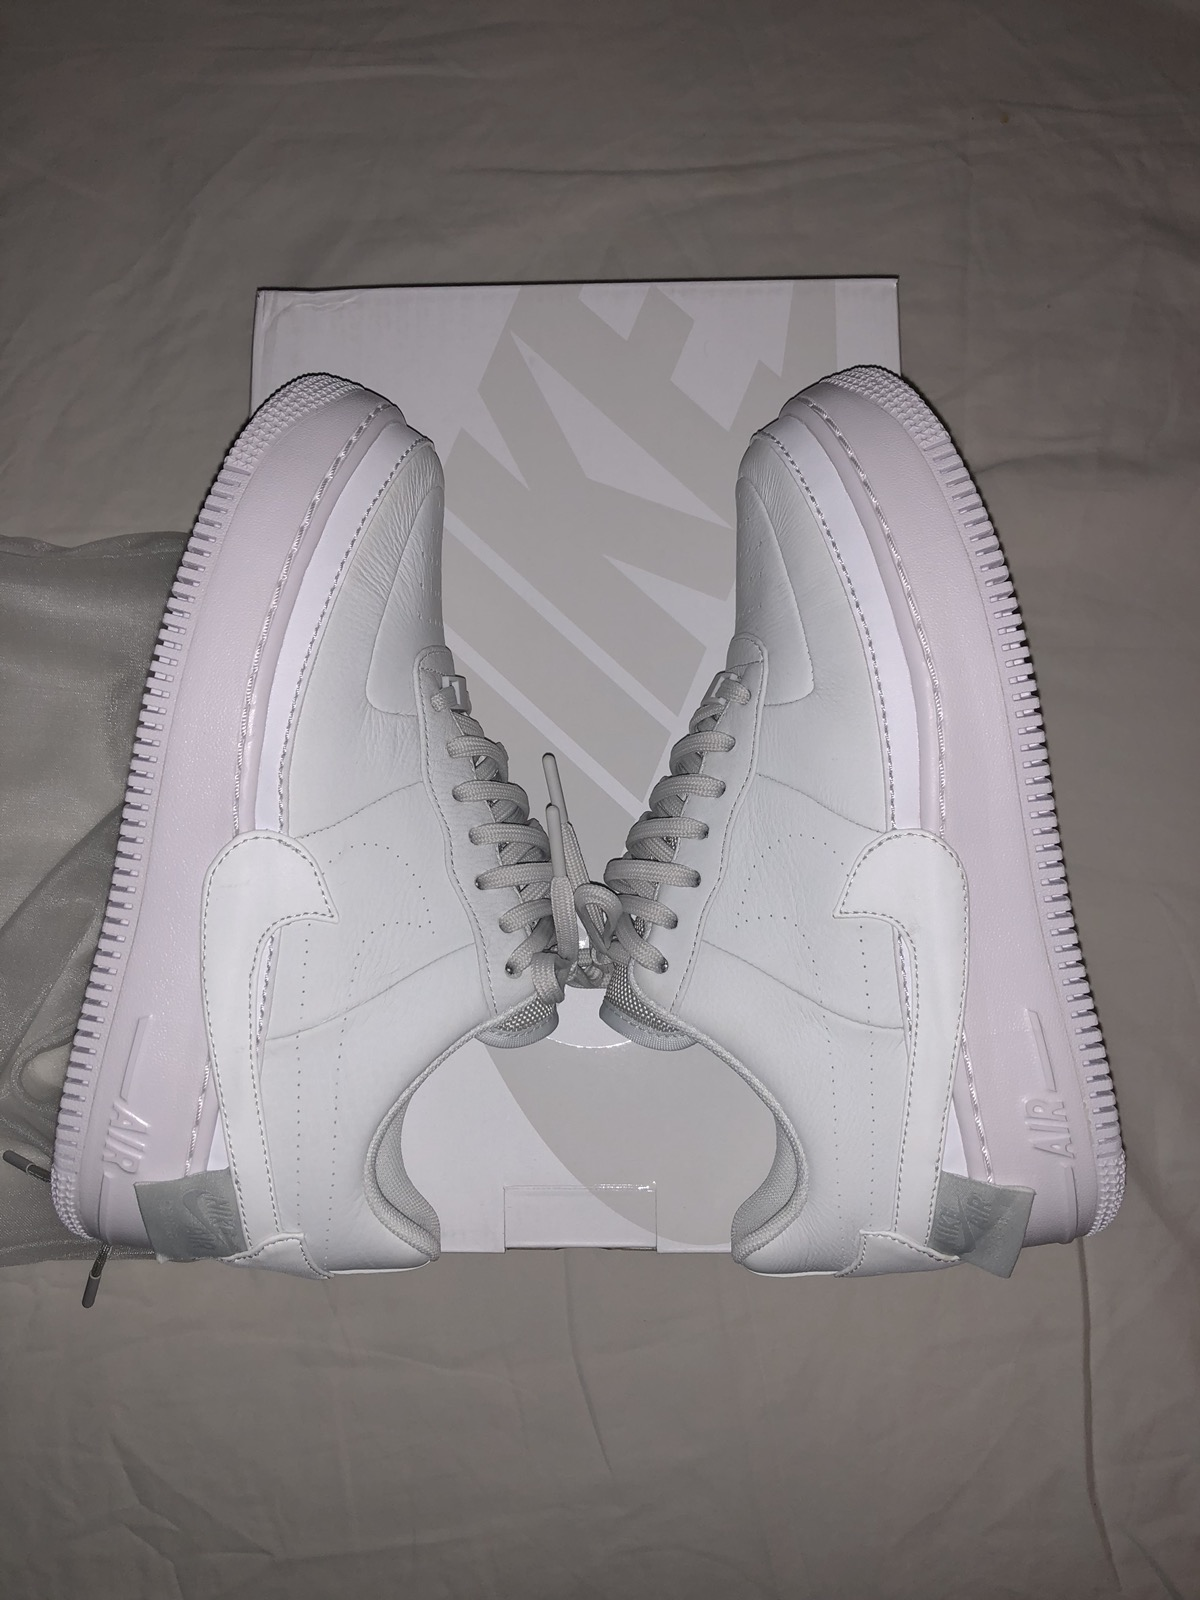 Nike Nike Air Force 1 Reimagined Jester XX Off White Size 7.5 Men s And  Women s 9 Size 7.5 - Low-Top Sneakers for Sale - Grailed d9e4f4cc5